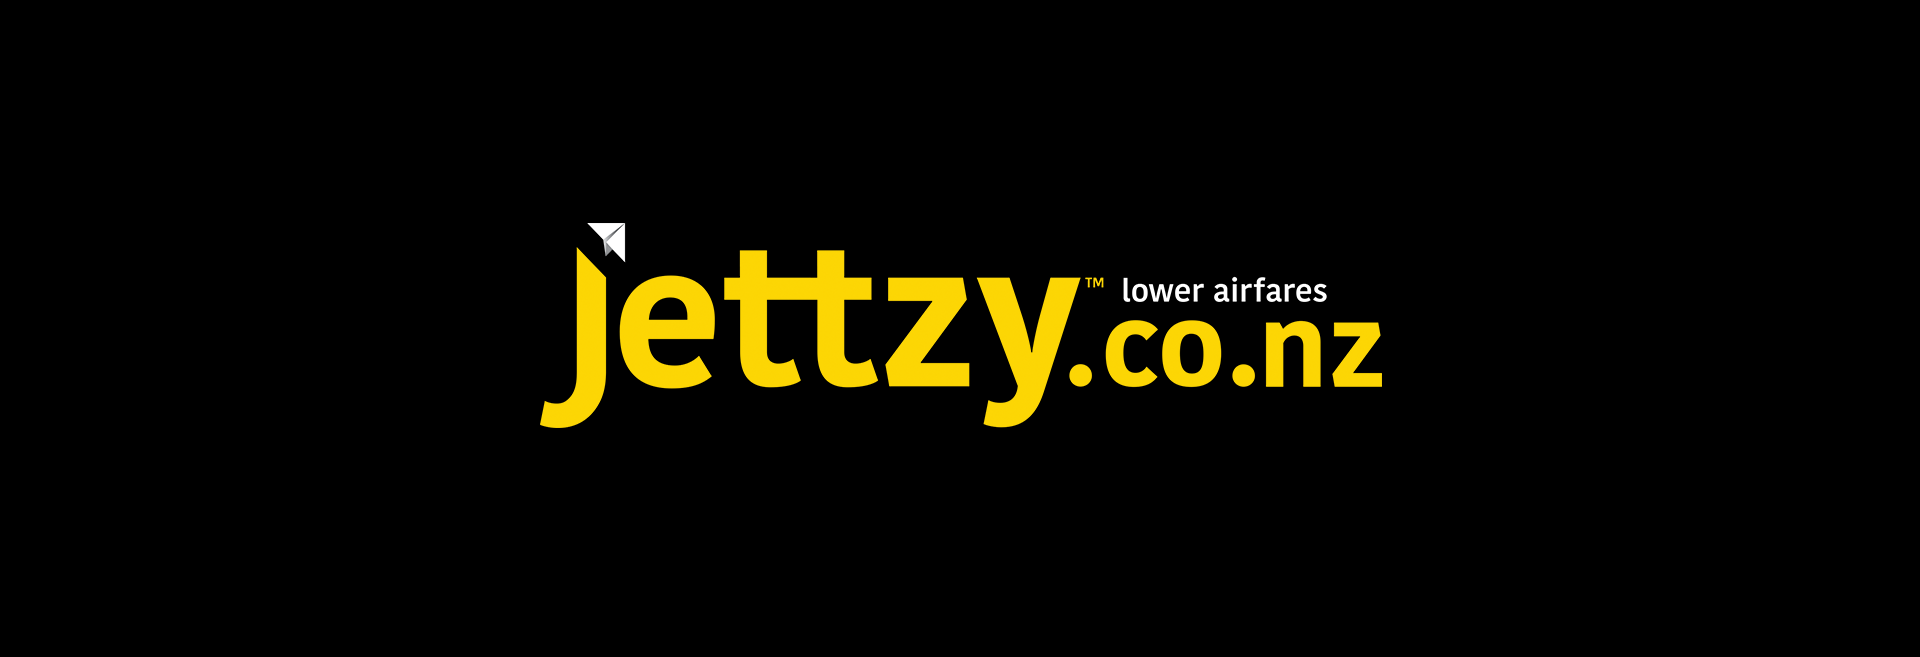 REDFIRE_jettzy_photography_branding_packaging_digital_graphicdesign_advertising_web_designagency